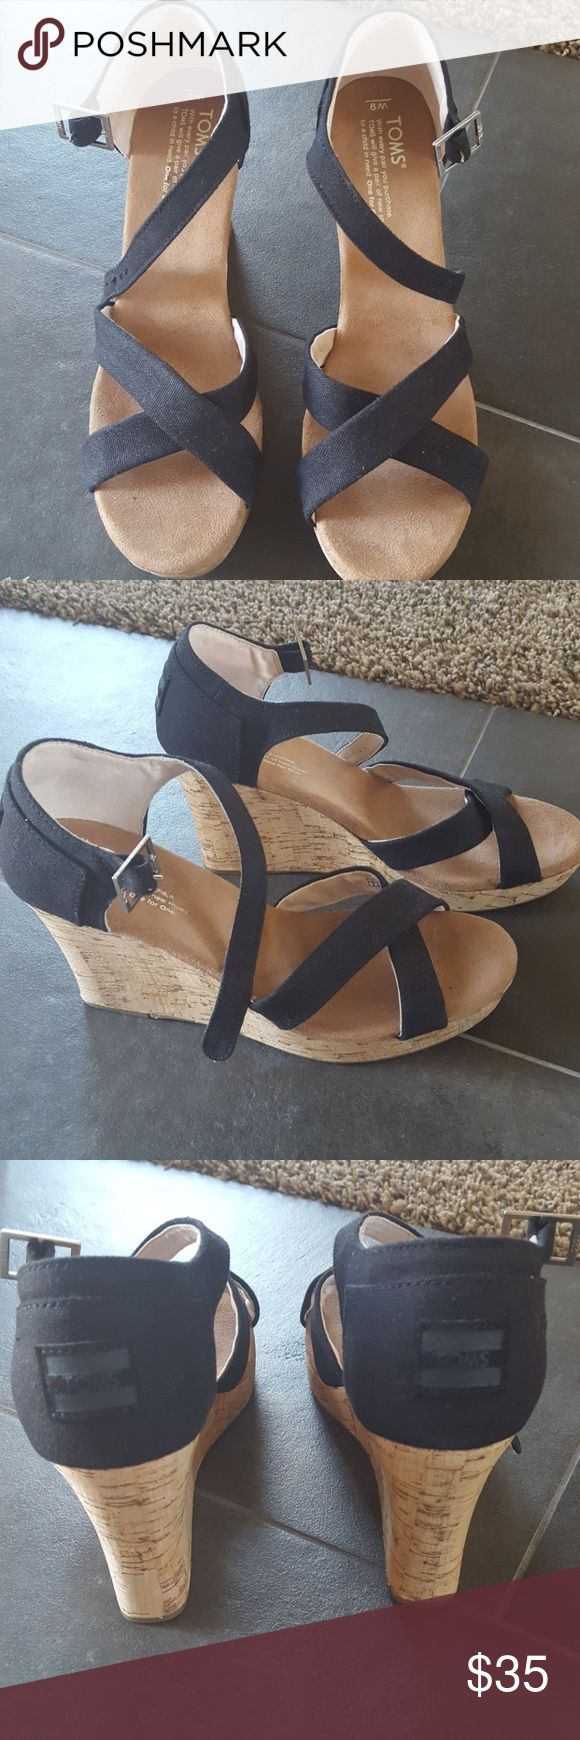 Toms wedge sandal Brand new, never worn, Toms size 9 wedge sandal Toms Shoes Wedges